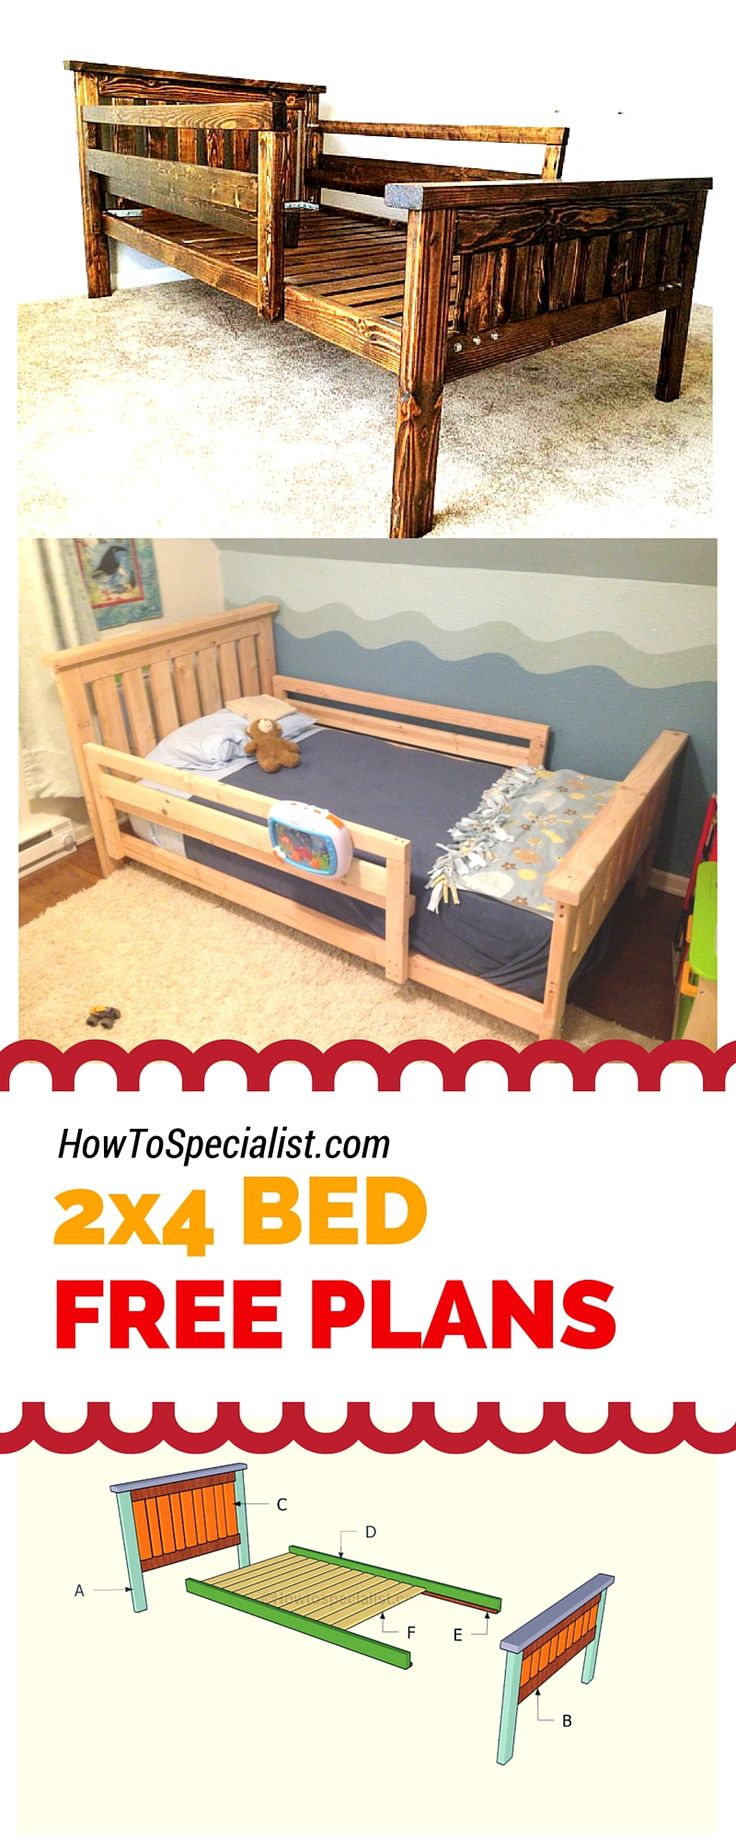 109 best bed frame plans images on pinterest bed frame plans